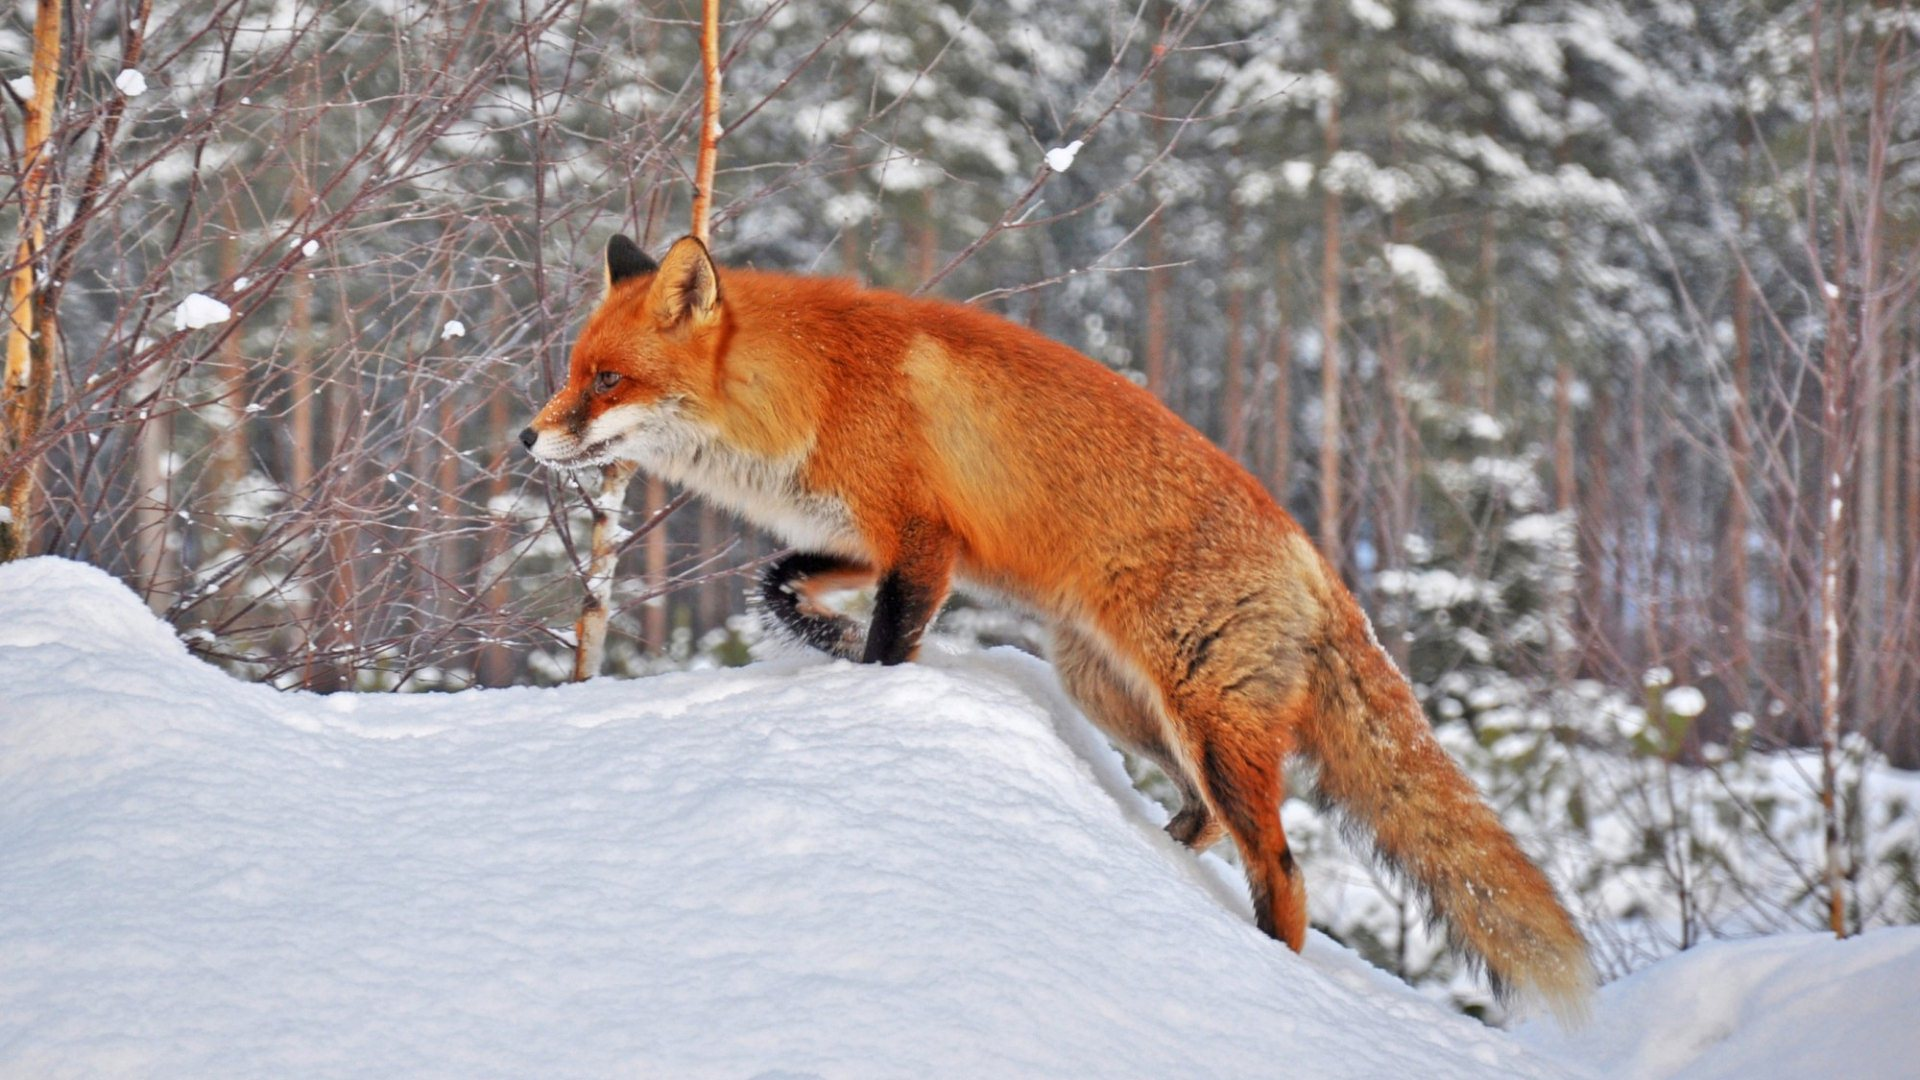 fox-in-snow-1920%C3%971080-wallpaper-wpc5804966